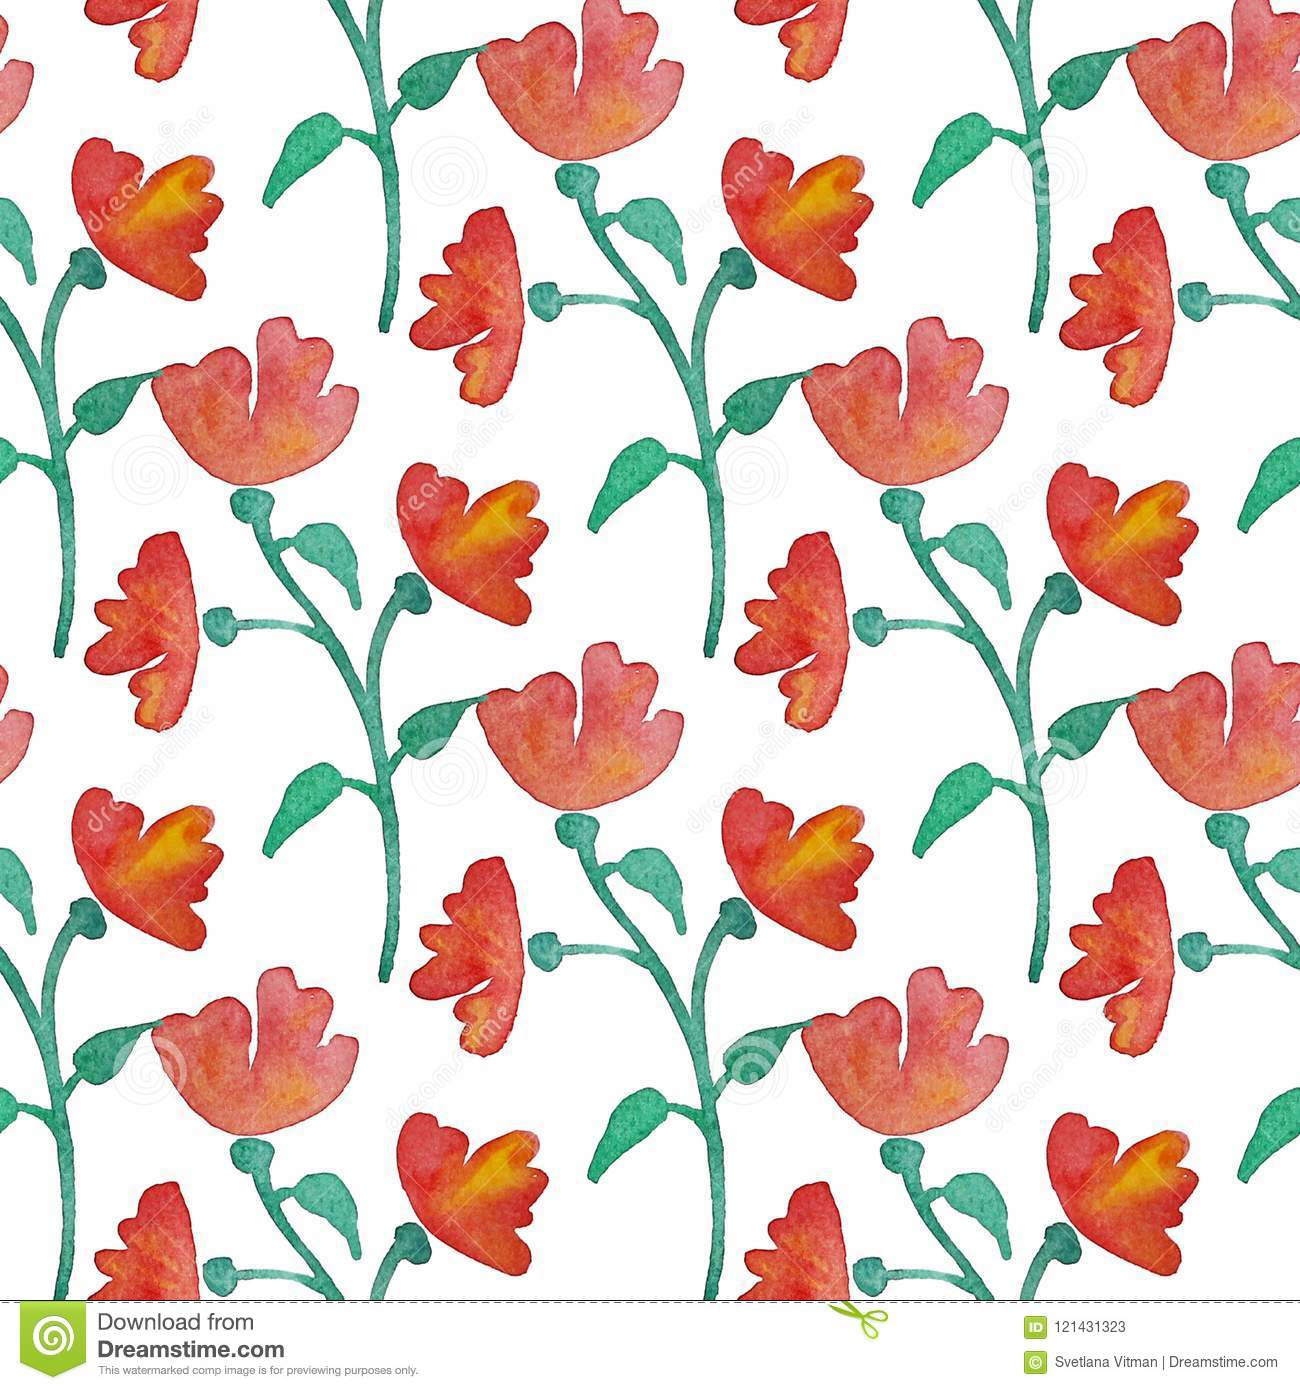 Vintage Floral Seamless Pattern With Red Flowers And Leaf Print